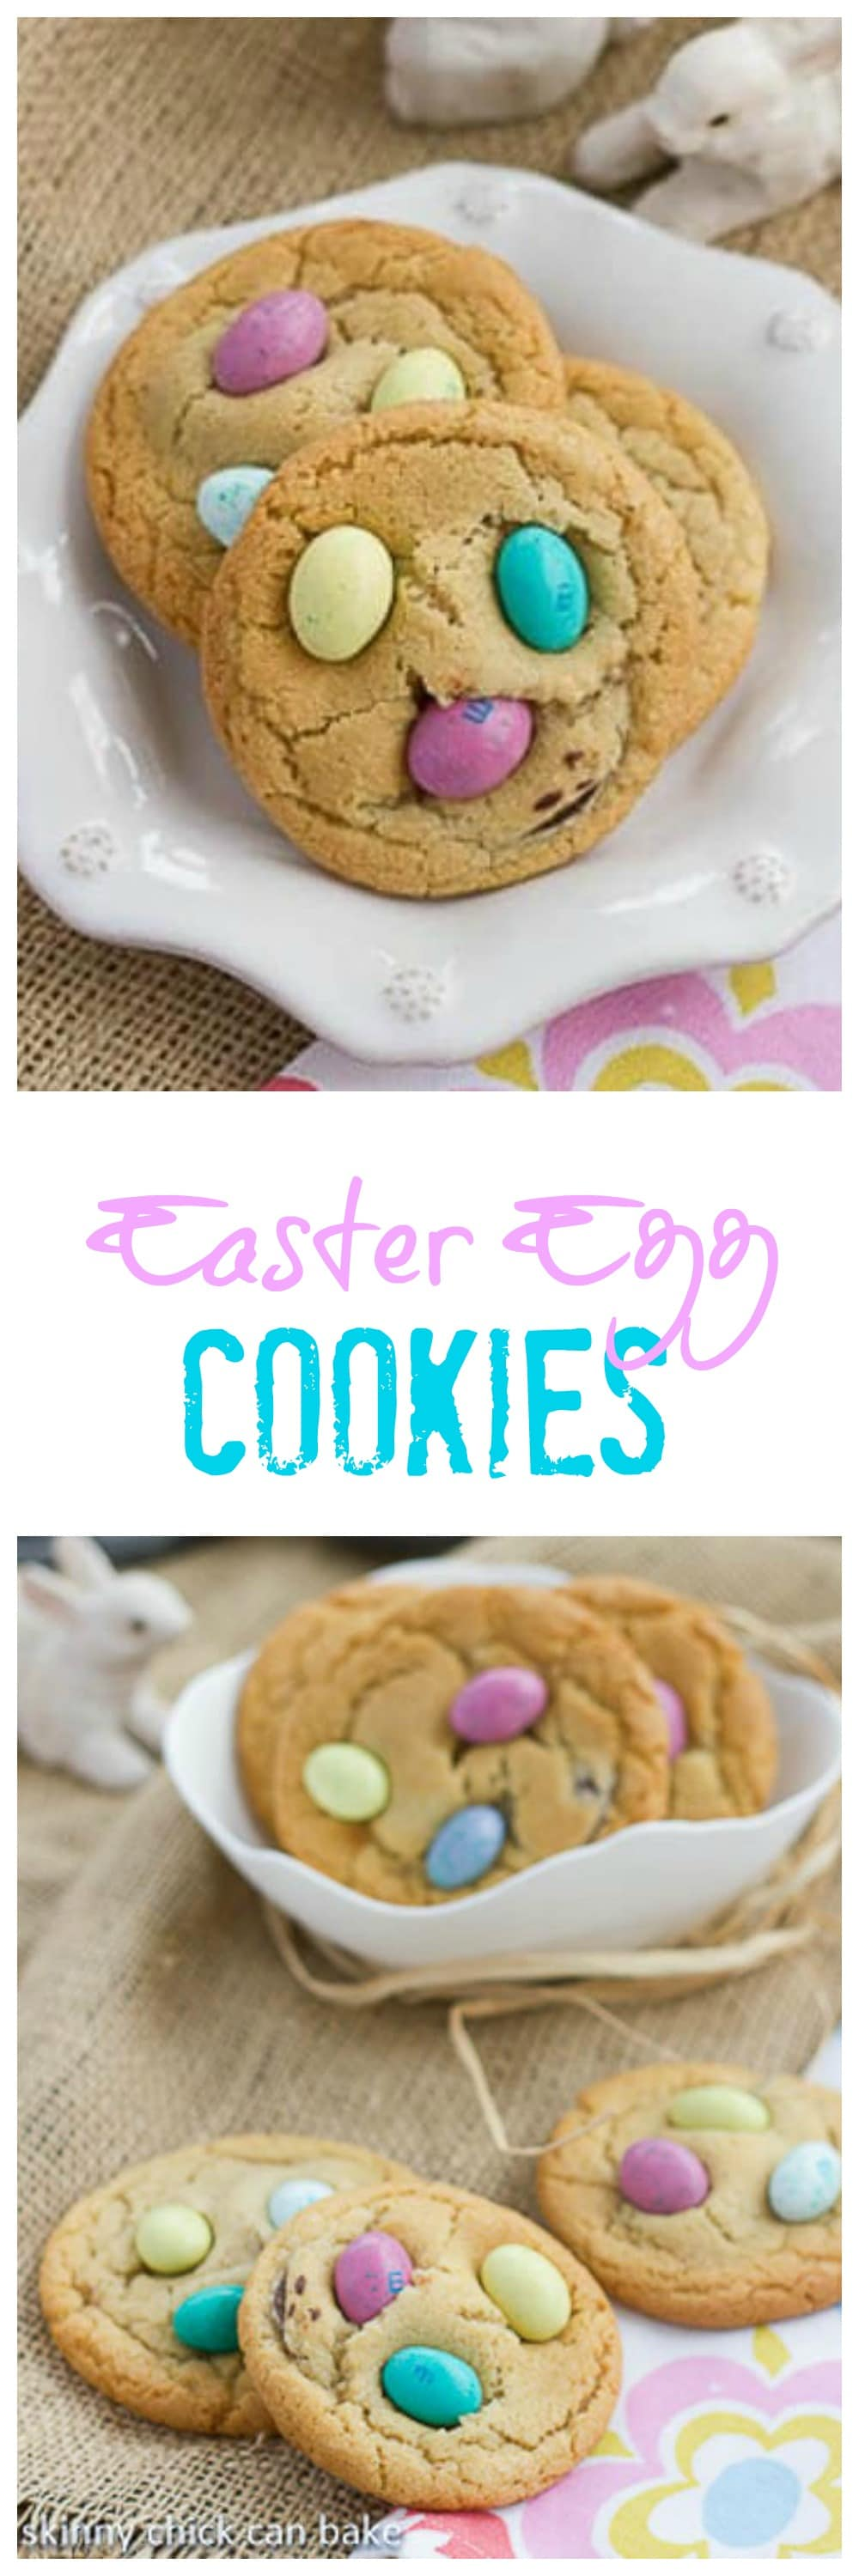 Easter Egg Cookies - Festive holiday cookies studded with chocolate discs and M&M's #Easter #cookies #chocolatechipcookies